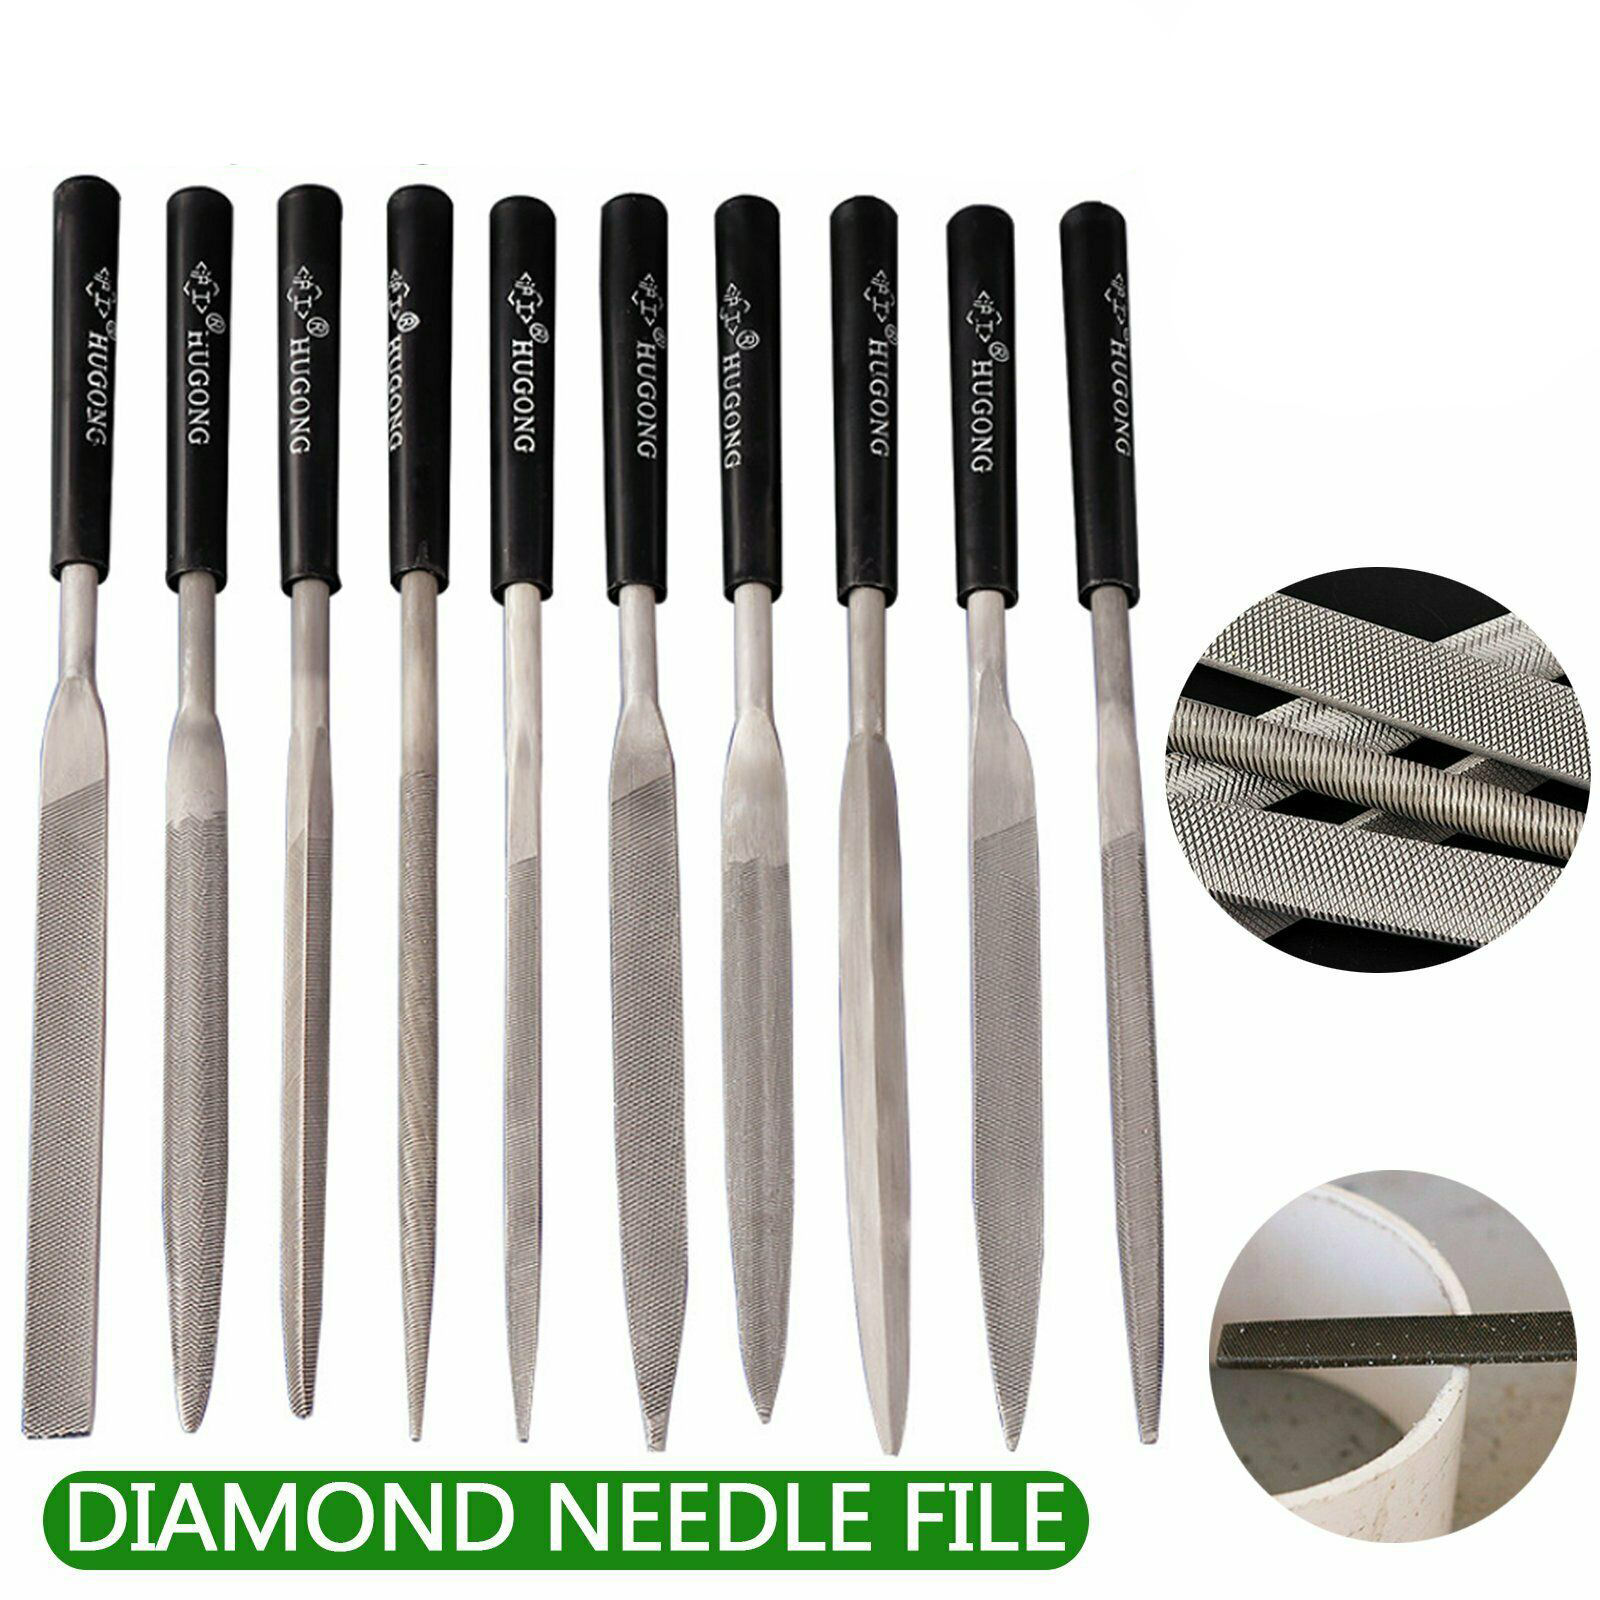 Set Of 10 160x4mm Diamond Mini Needle File Set For Metal Jeweler Wood Carving Craft